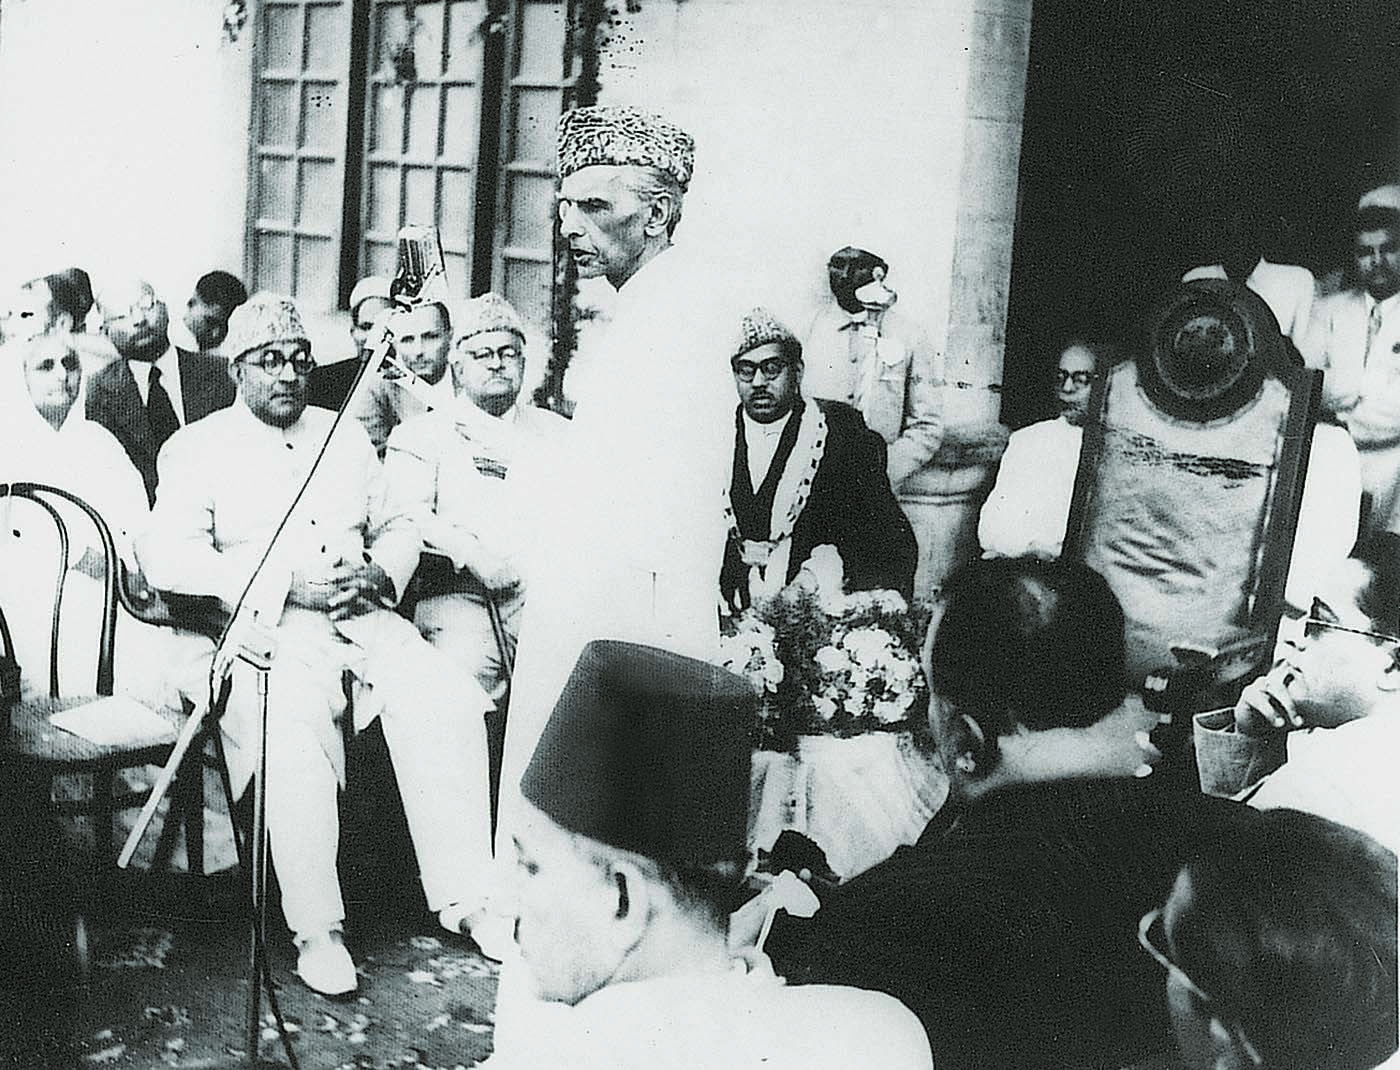 Quaid-i-Azam Mohammad Ali Jinnah speaks at a civic reception held in his honour by the Karachi Municipal Corporation (KMC) at the KMC headquarters on August 25, 1947. Mayor Hakeem Muhammad Ahsan is seen on the right, while Nawabzada Liaquat Ali Khan and Sir Ghulam Hussain Hidayatullah are on the left. —​ Dawn/White Star Archives